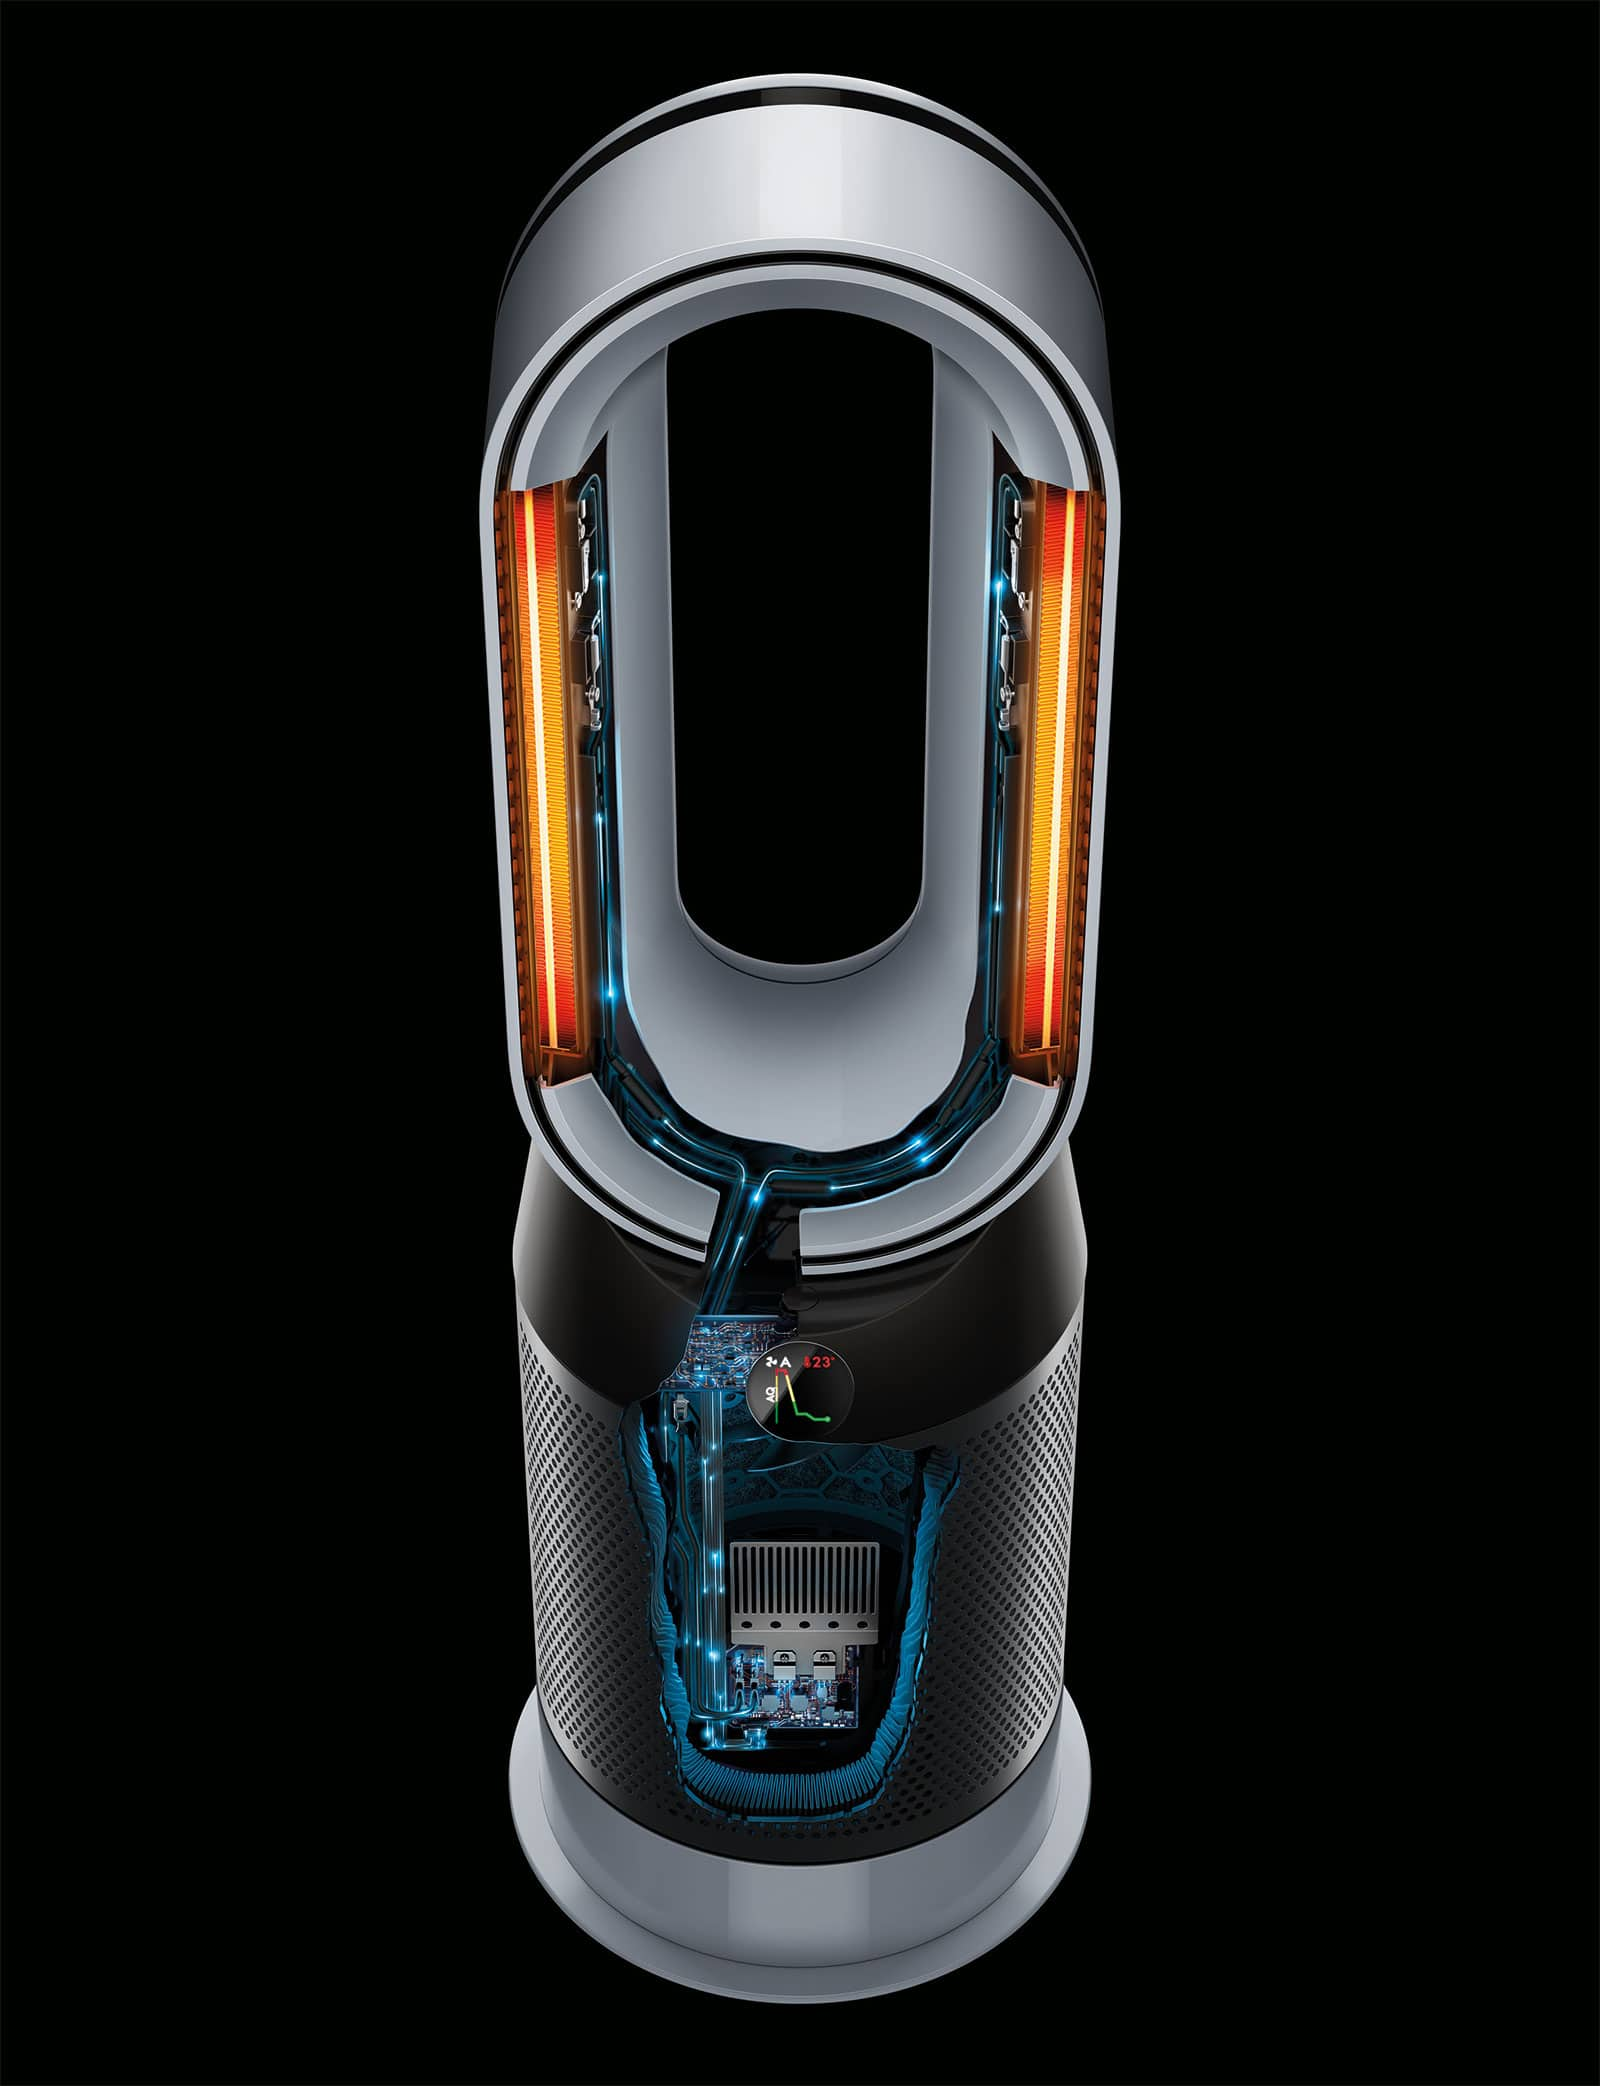 dyson 39 s improved air filtration comes to its hot cool fan. Black Bedroom Furniture Sets. Home Design Ideas